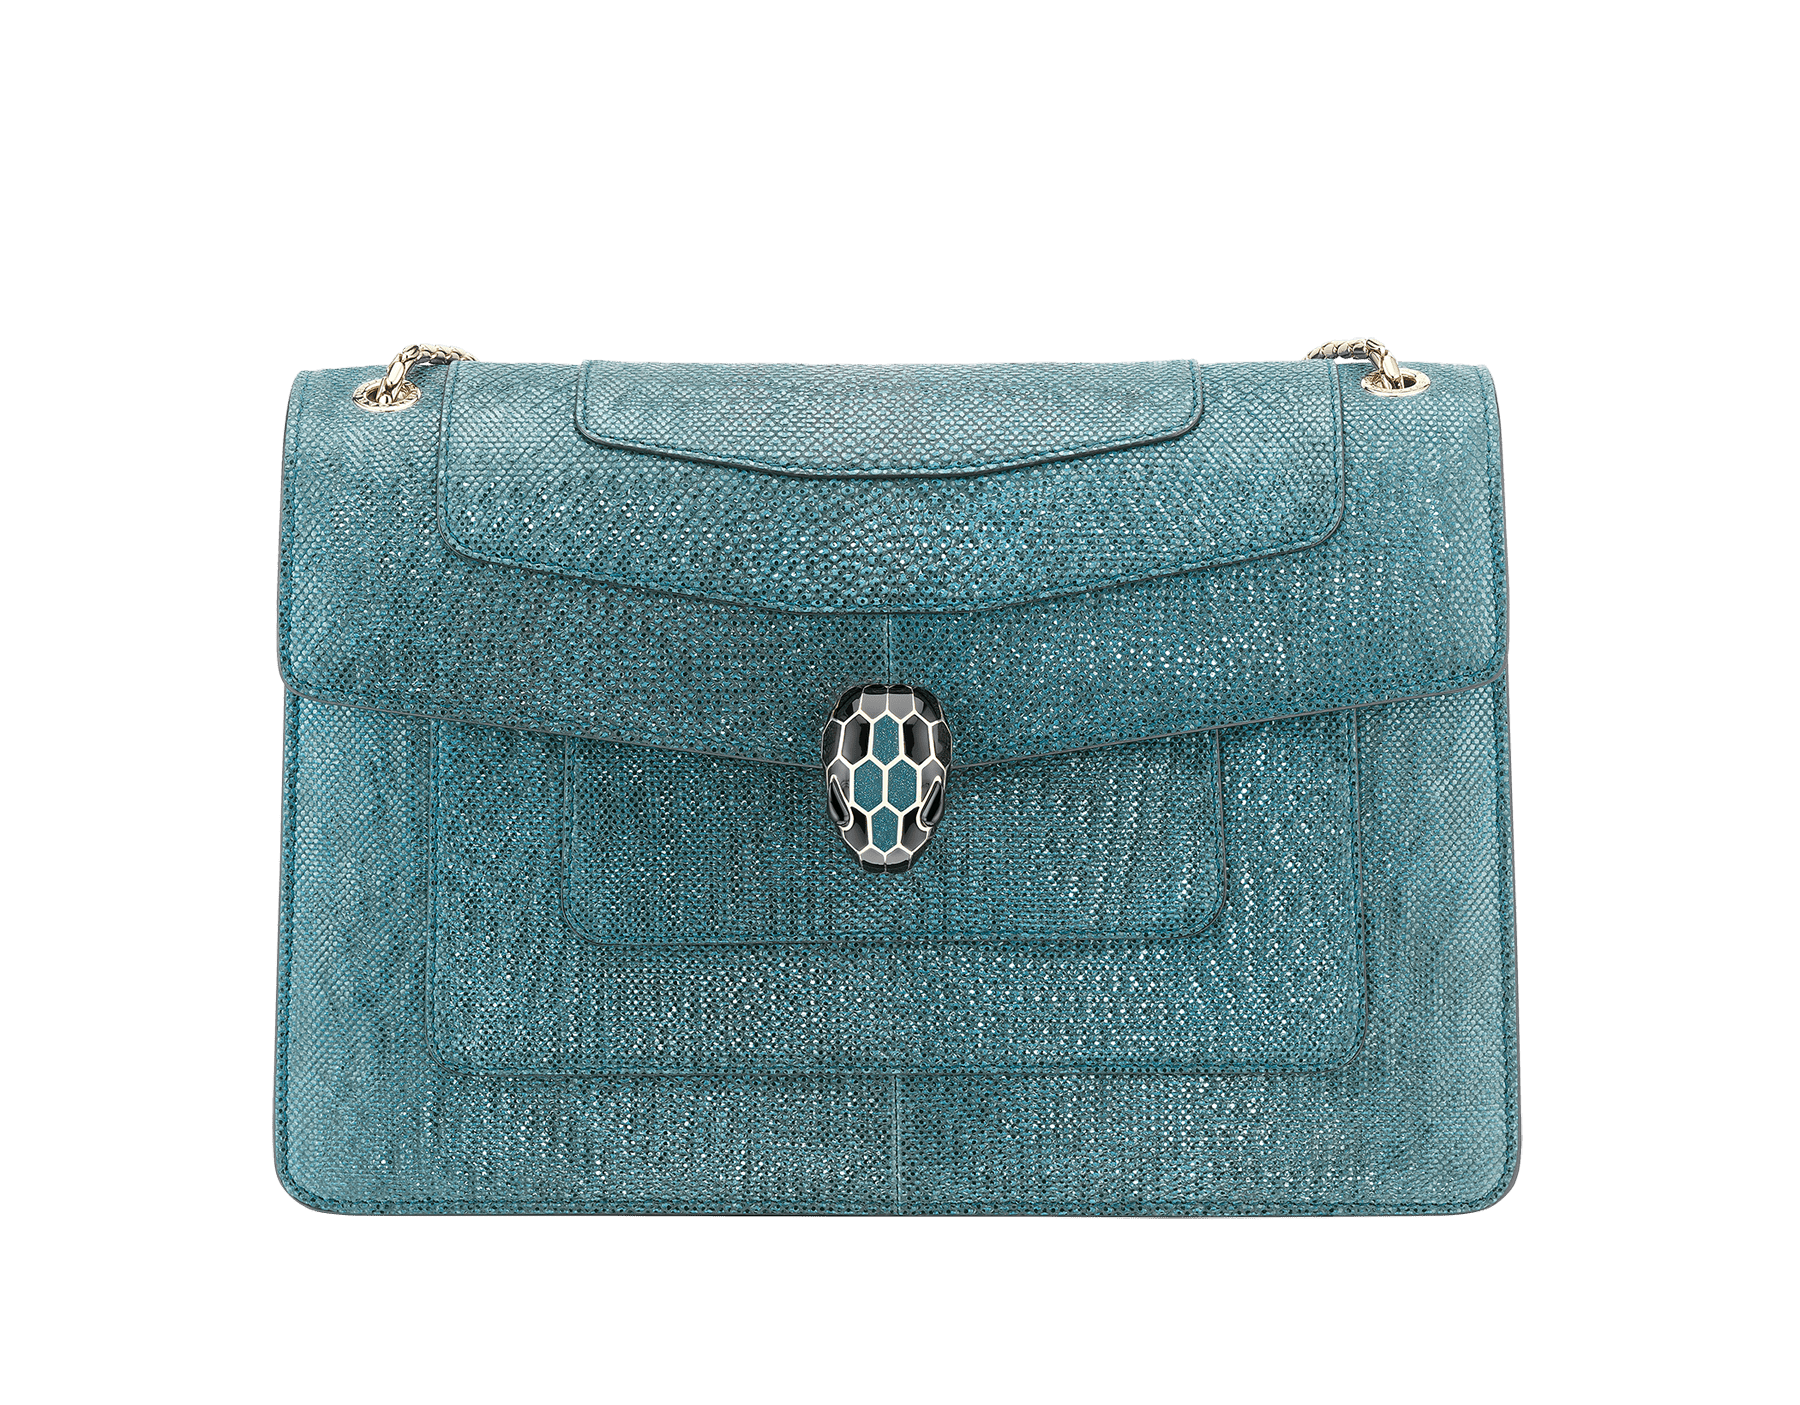 """""""Serpenti Forever"""" shoulder bag in deep jade metallic karung skin. Iconic snakehead closure in light gold plated brass enriched with black and glitter deep jade enamel and black onyx eyes. 287940 image 1"""